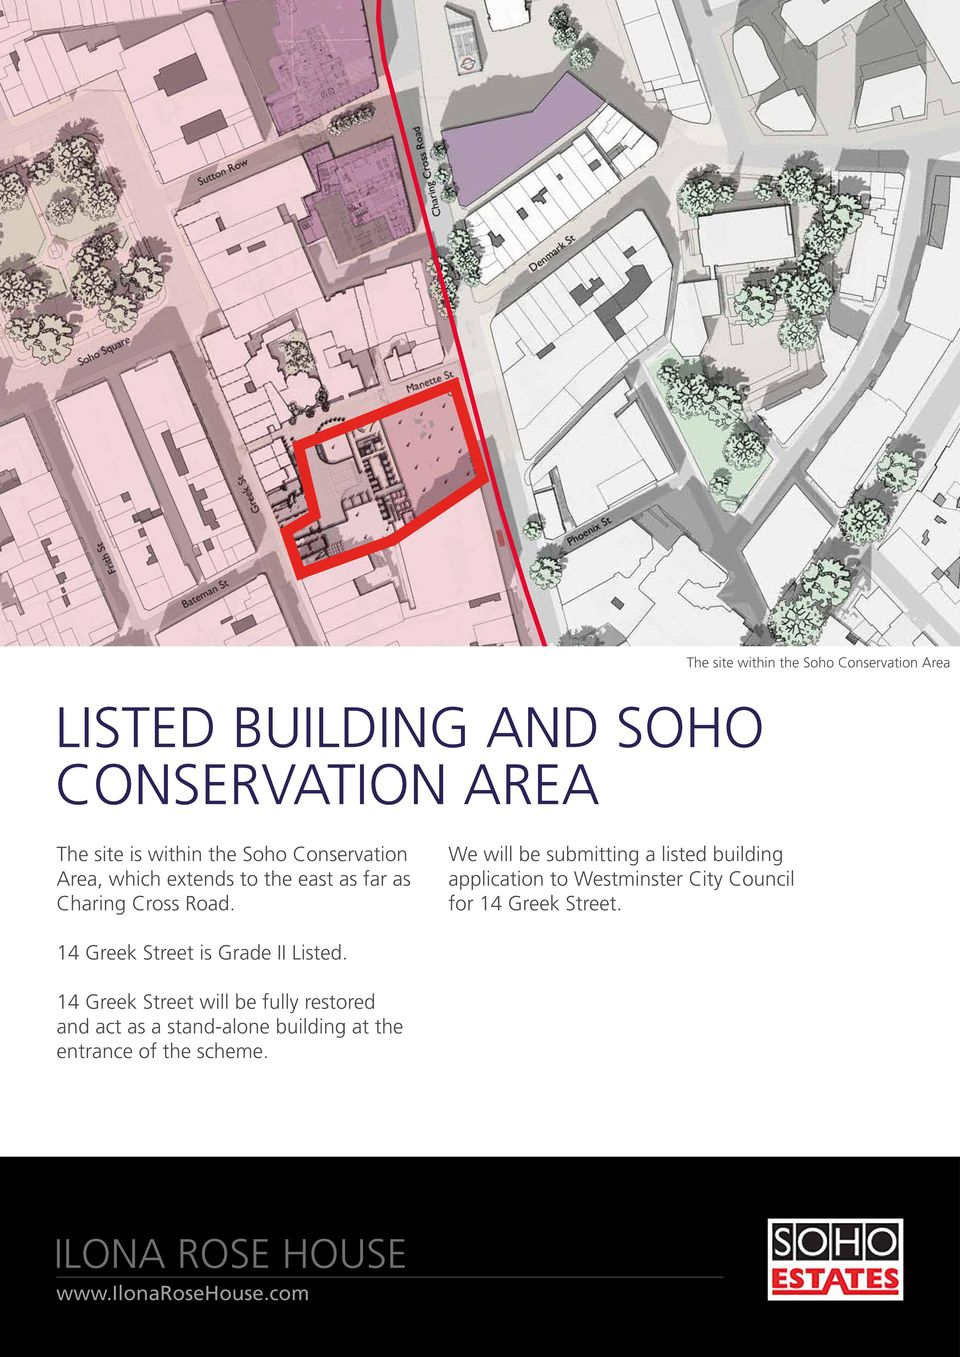 We will be submitting a listed building application to Westminster City Council for 14 Greek Street.